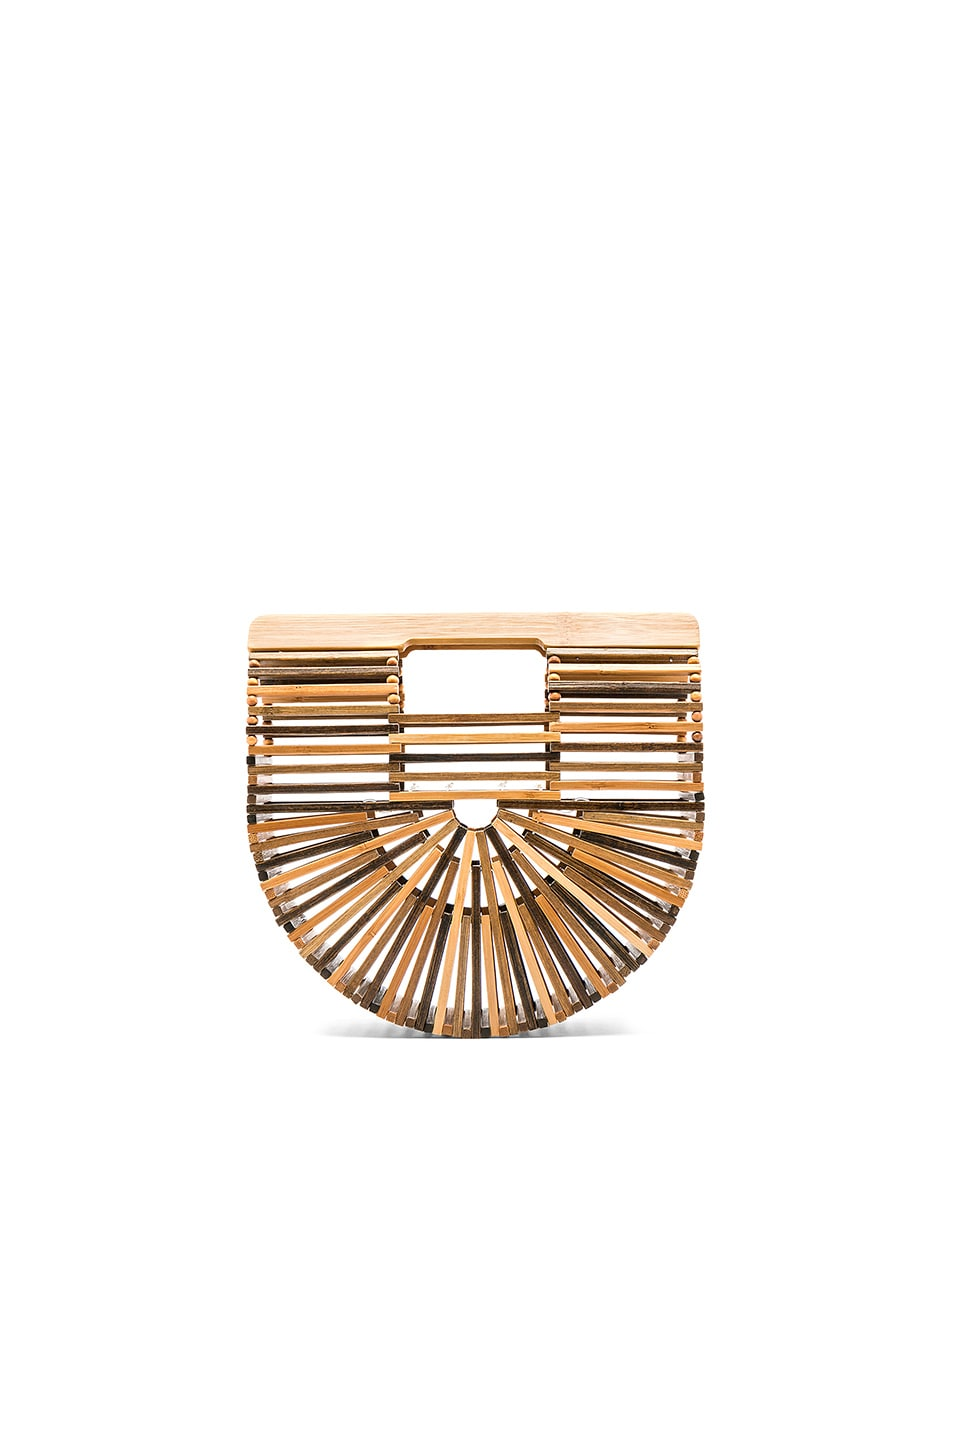 Cult Gaia Mini Gaias Ark Bag in Multi